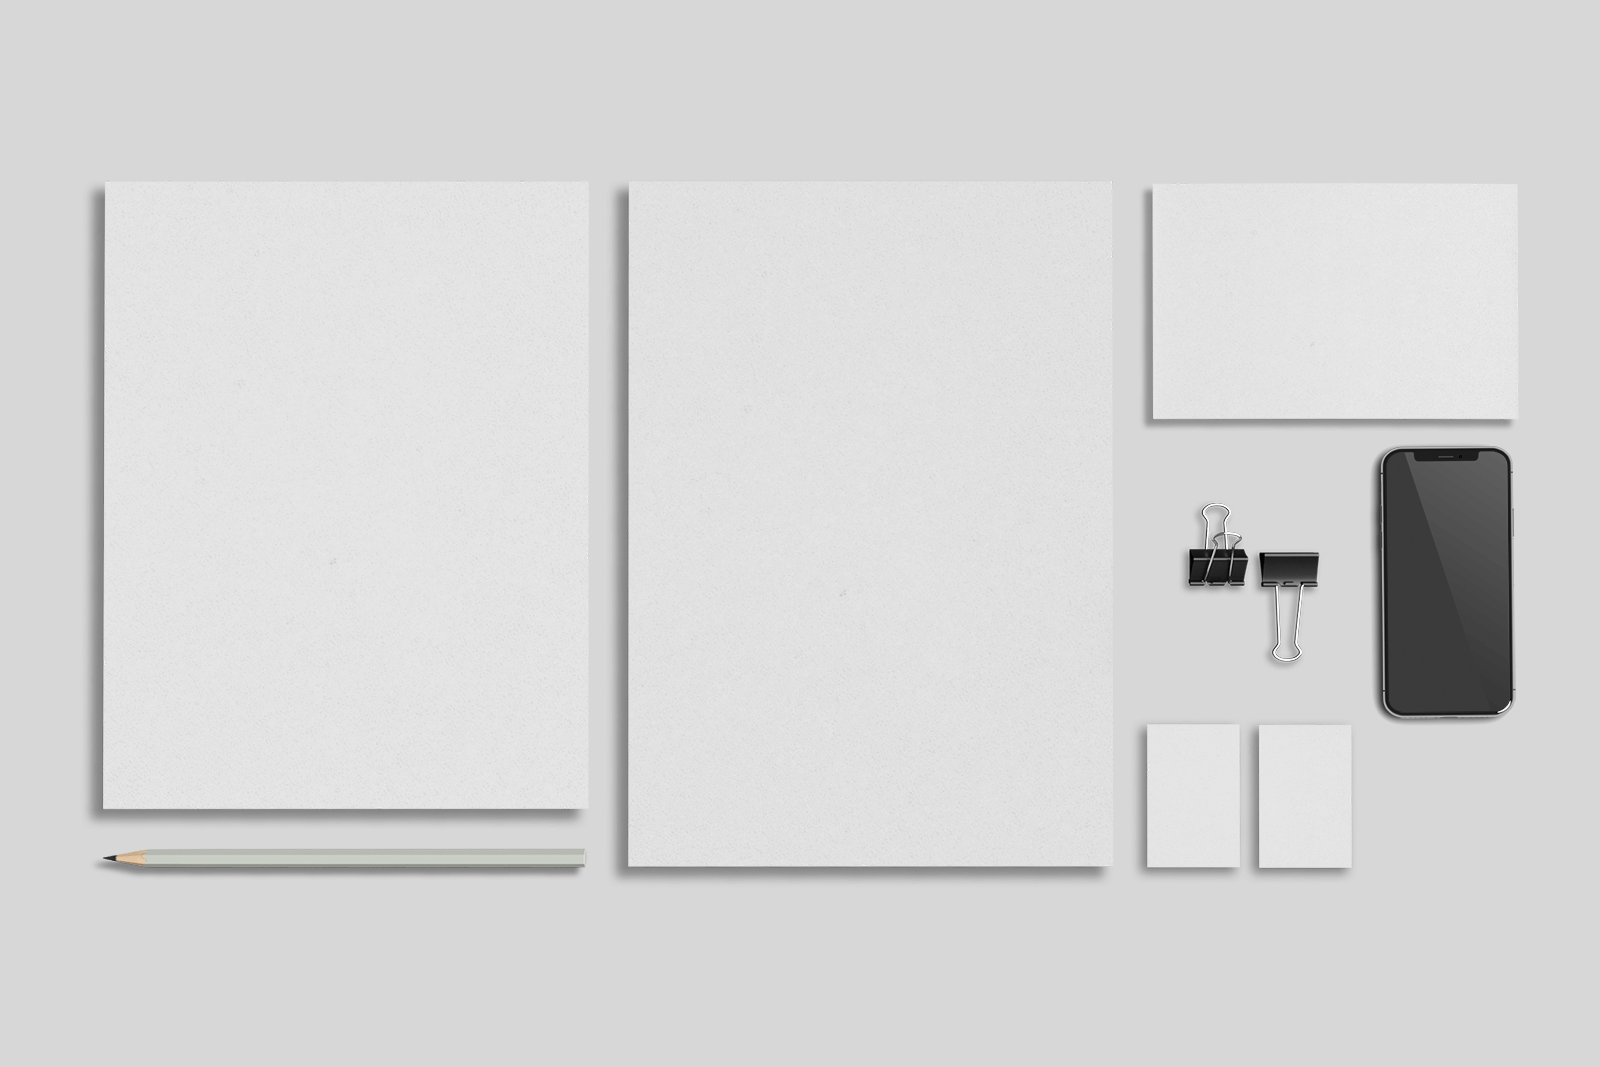 Free Stationery with MacBook and iPhone Mockup